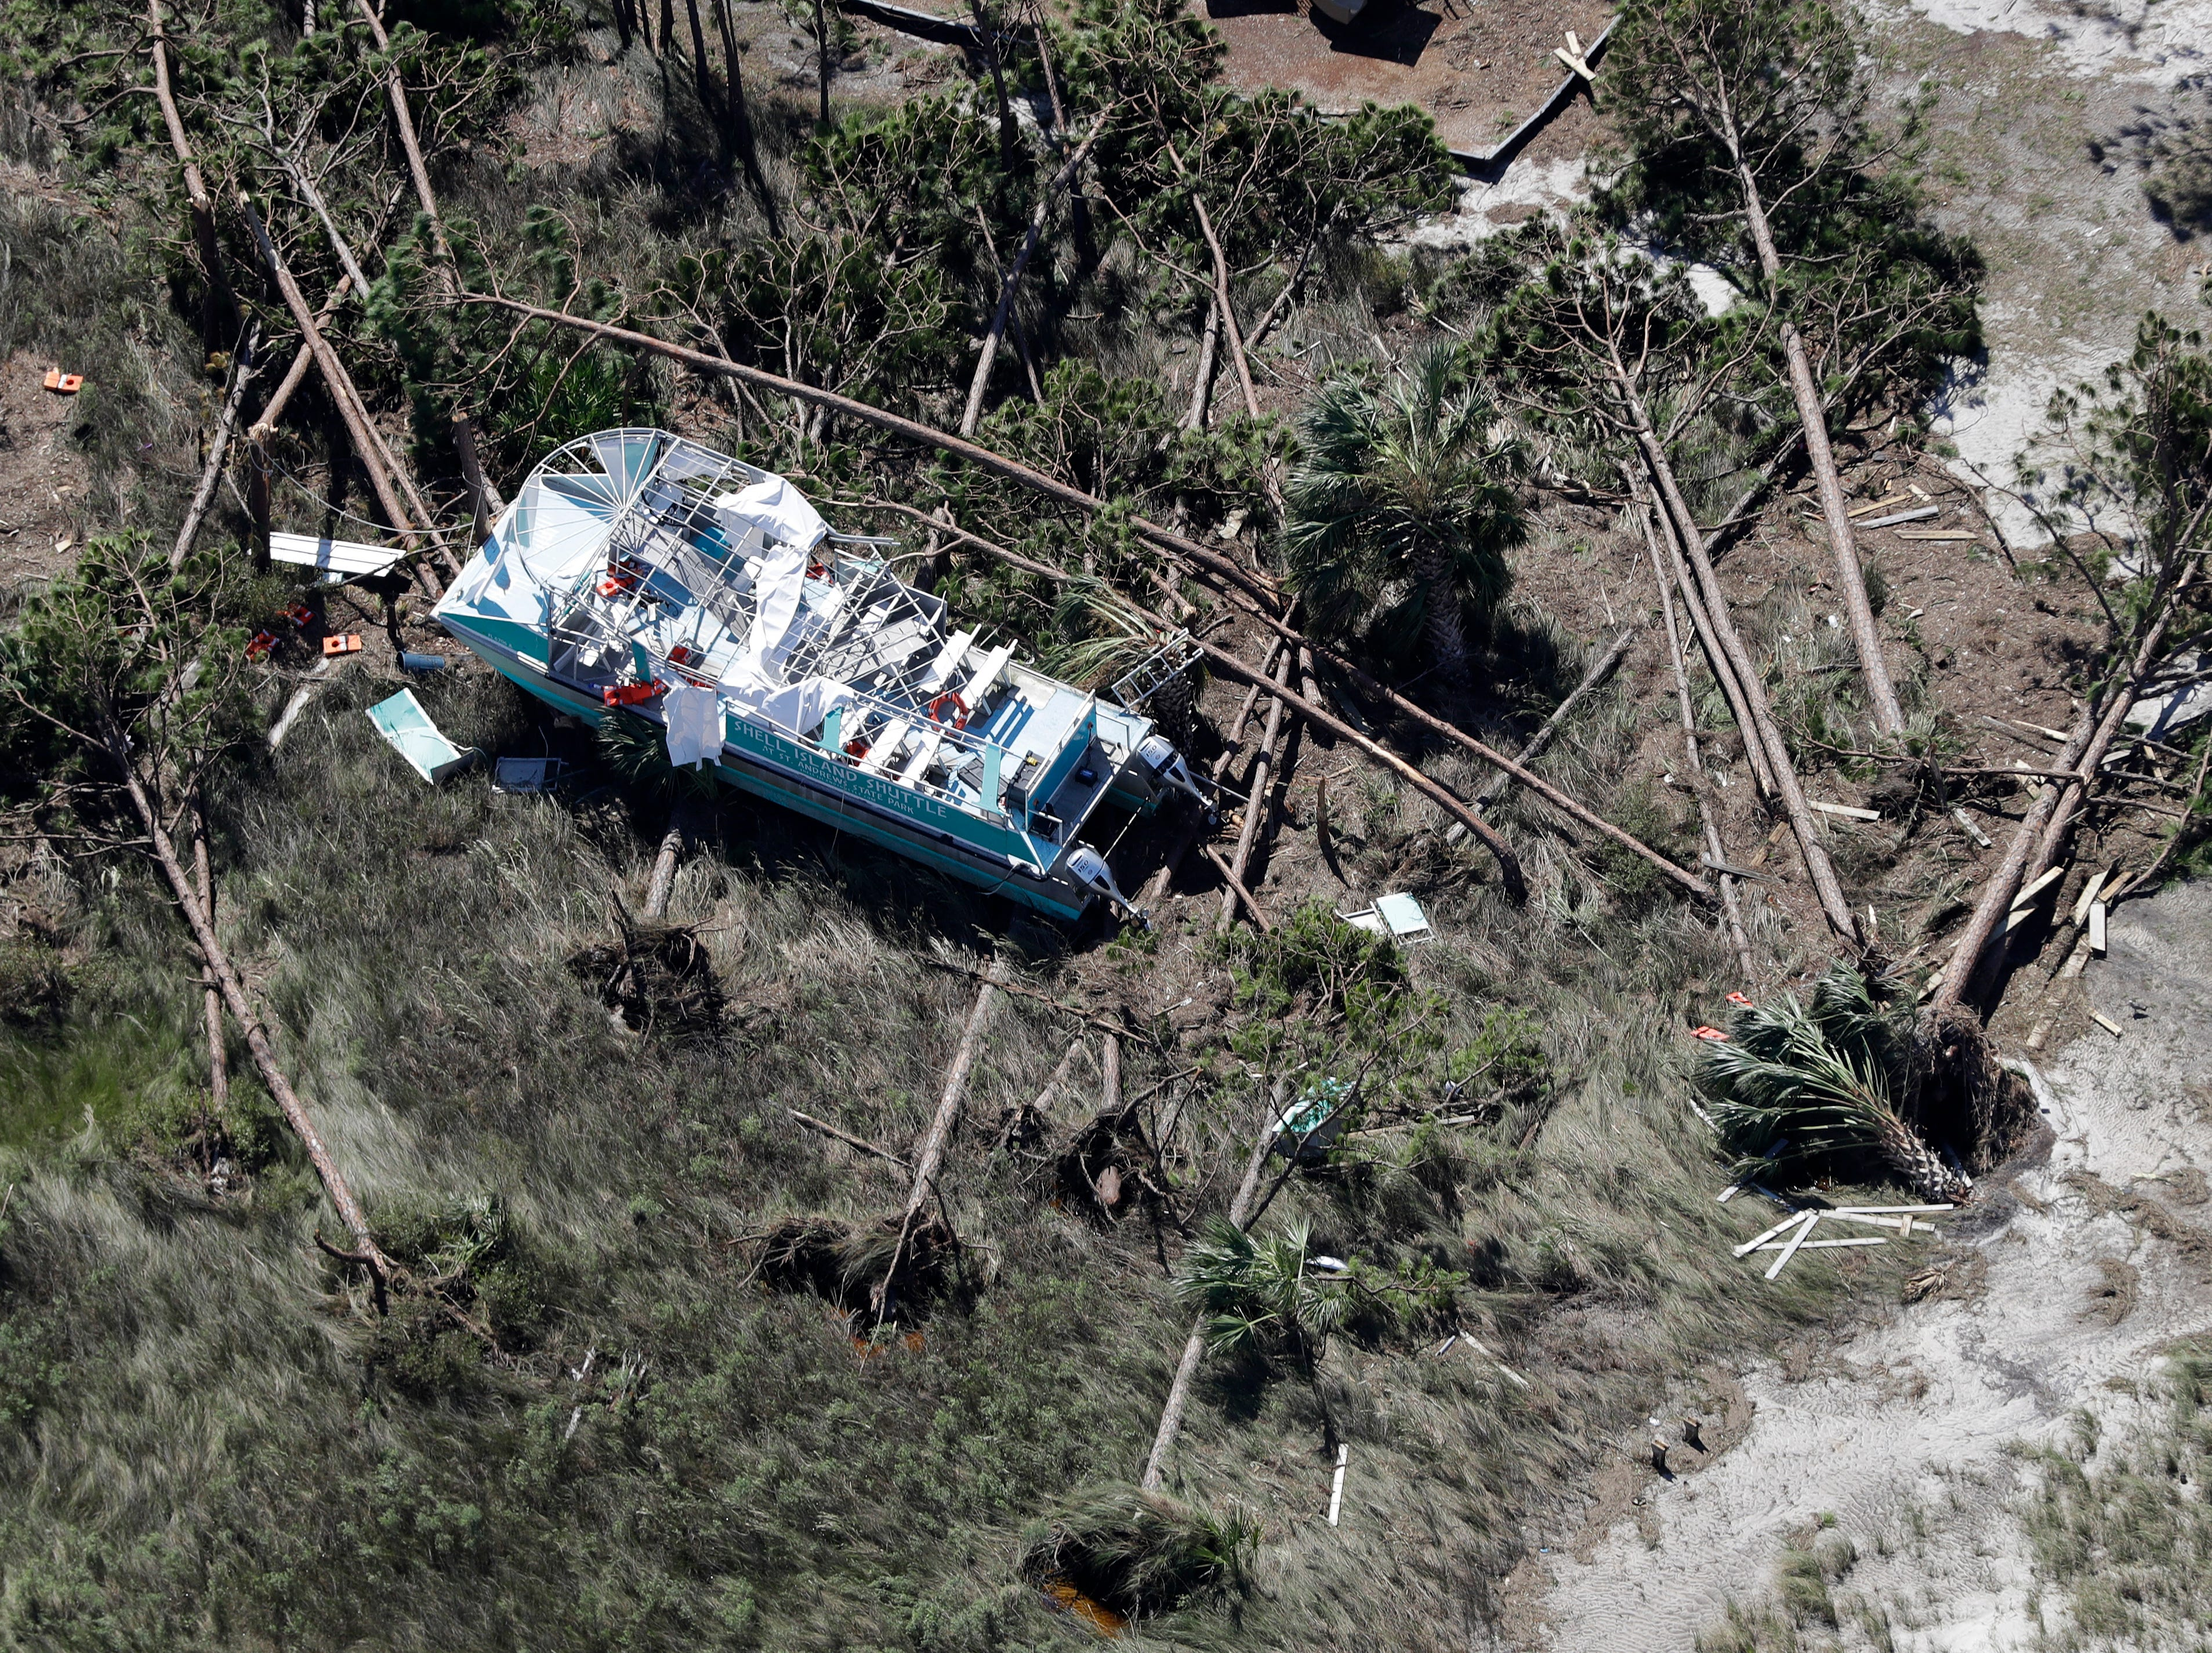 A boat destroyed by Hurricane Michael is shown in this aerial photo Thursday, Oct. 11, 2018, in Mexico Beach, Fla. The devastation inflicted by Hurricane Michael came into focus Thursday with rows upon rows of homes found smashed to pieces, and rescue crews began making their way into the stricken areas in hopes of accounting for hundreds of people who may have stayed behind. (AP Photo/Chris O'Meara)